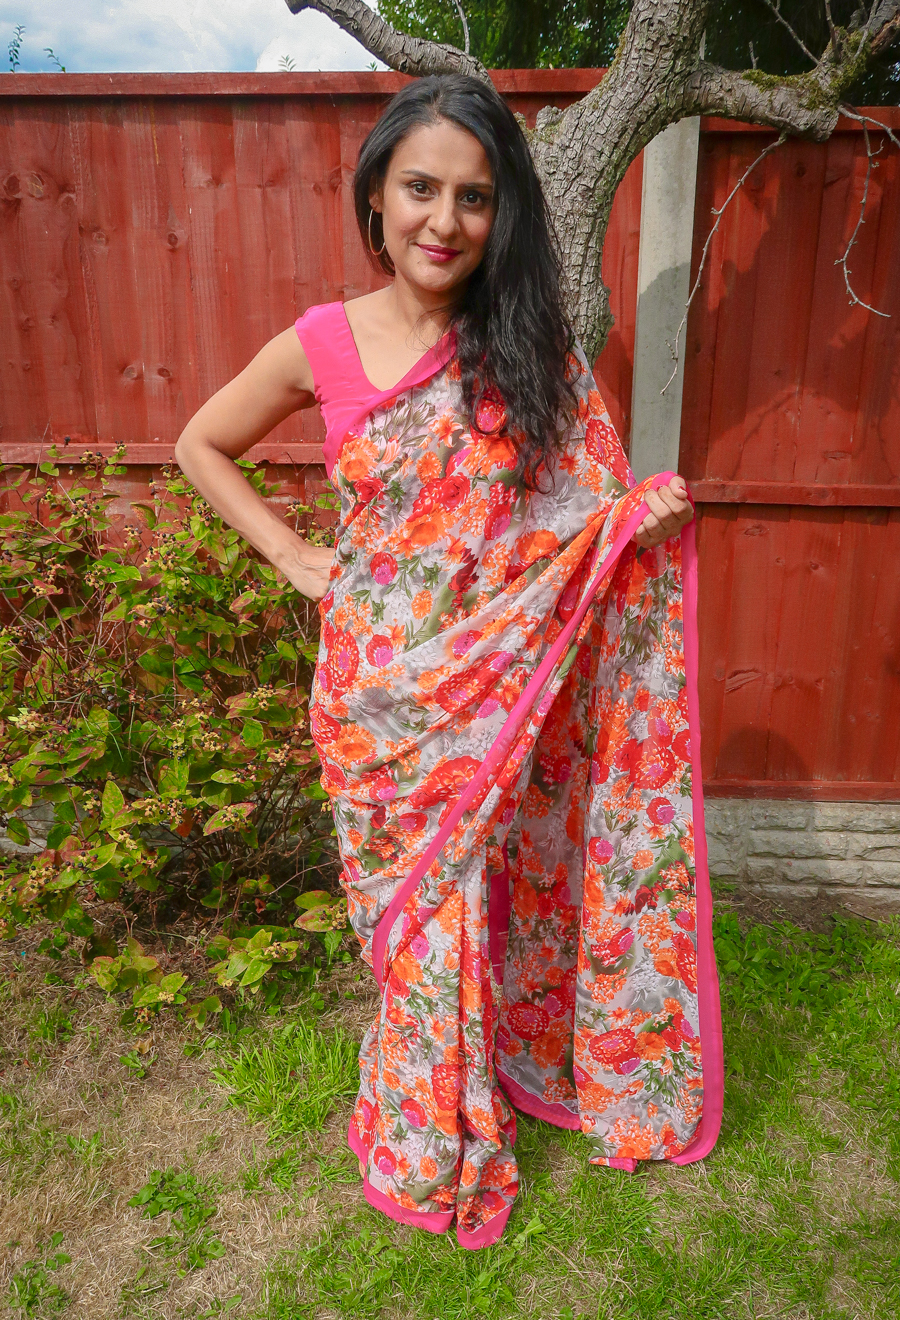 What I Wore - Hot Pink Floral Saree